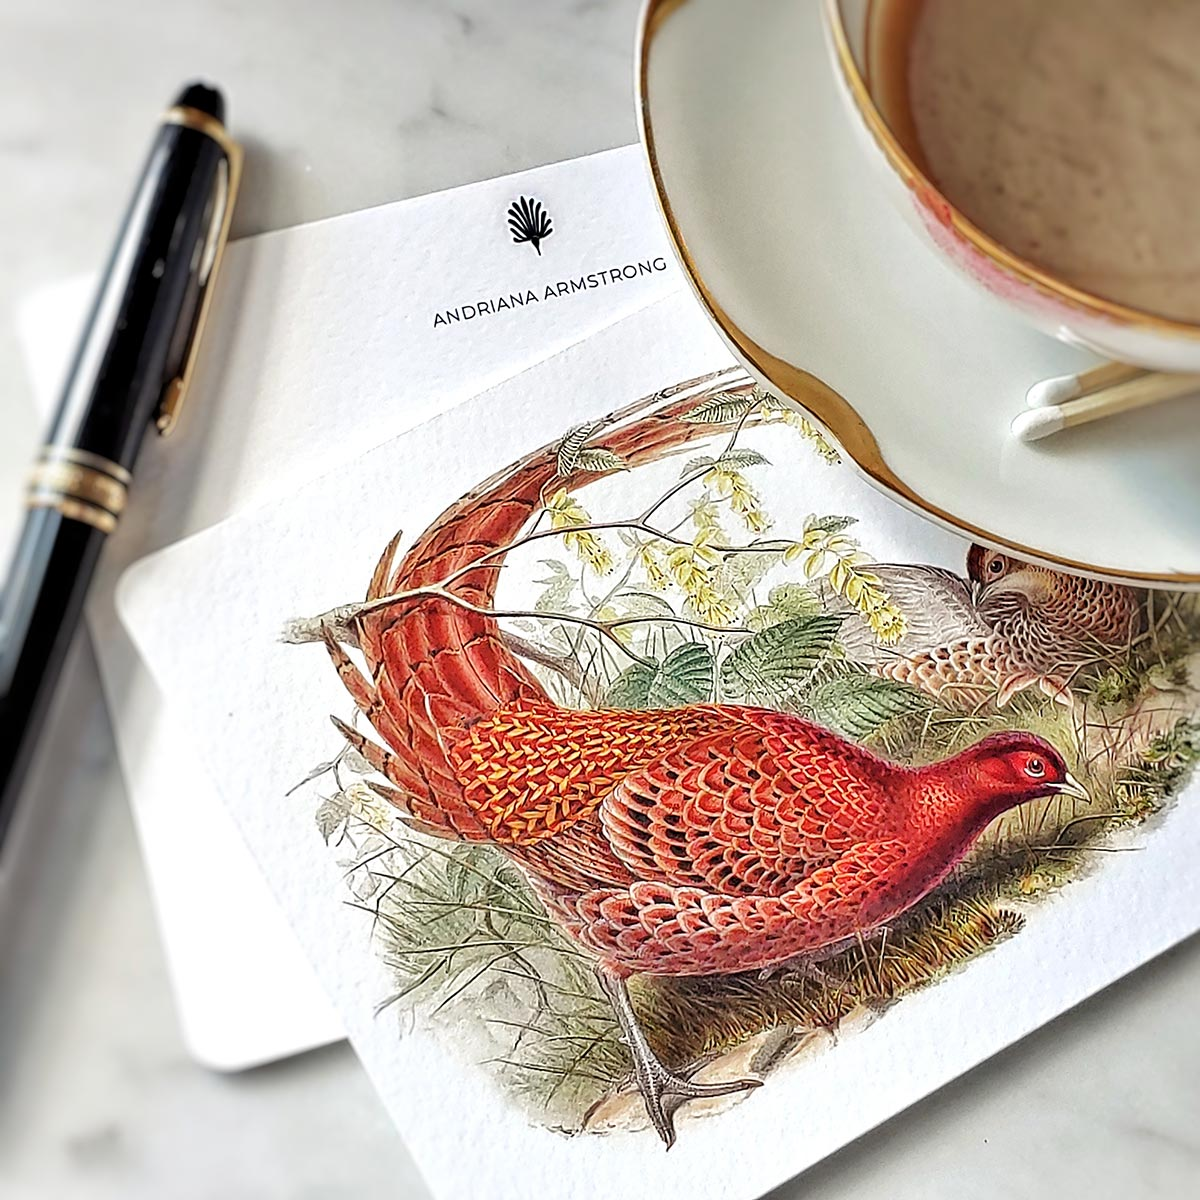 showing a detail of the pheasant on a Mr. P's note card, with personalized name on the back